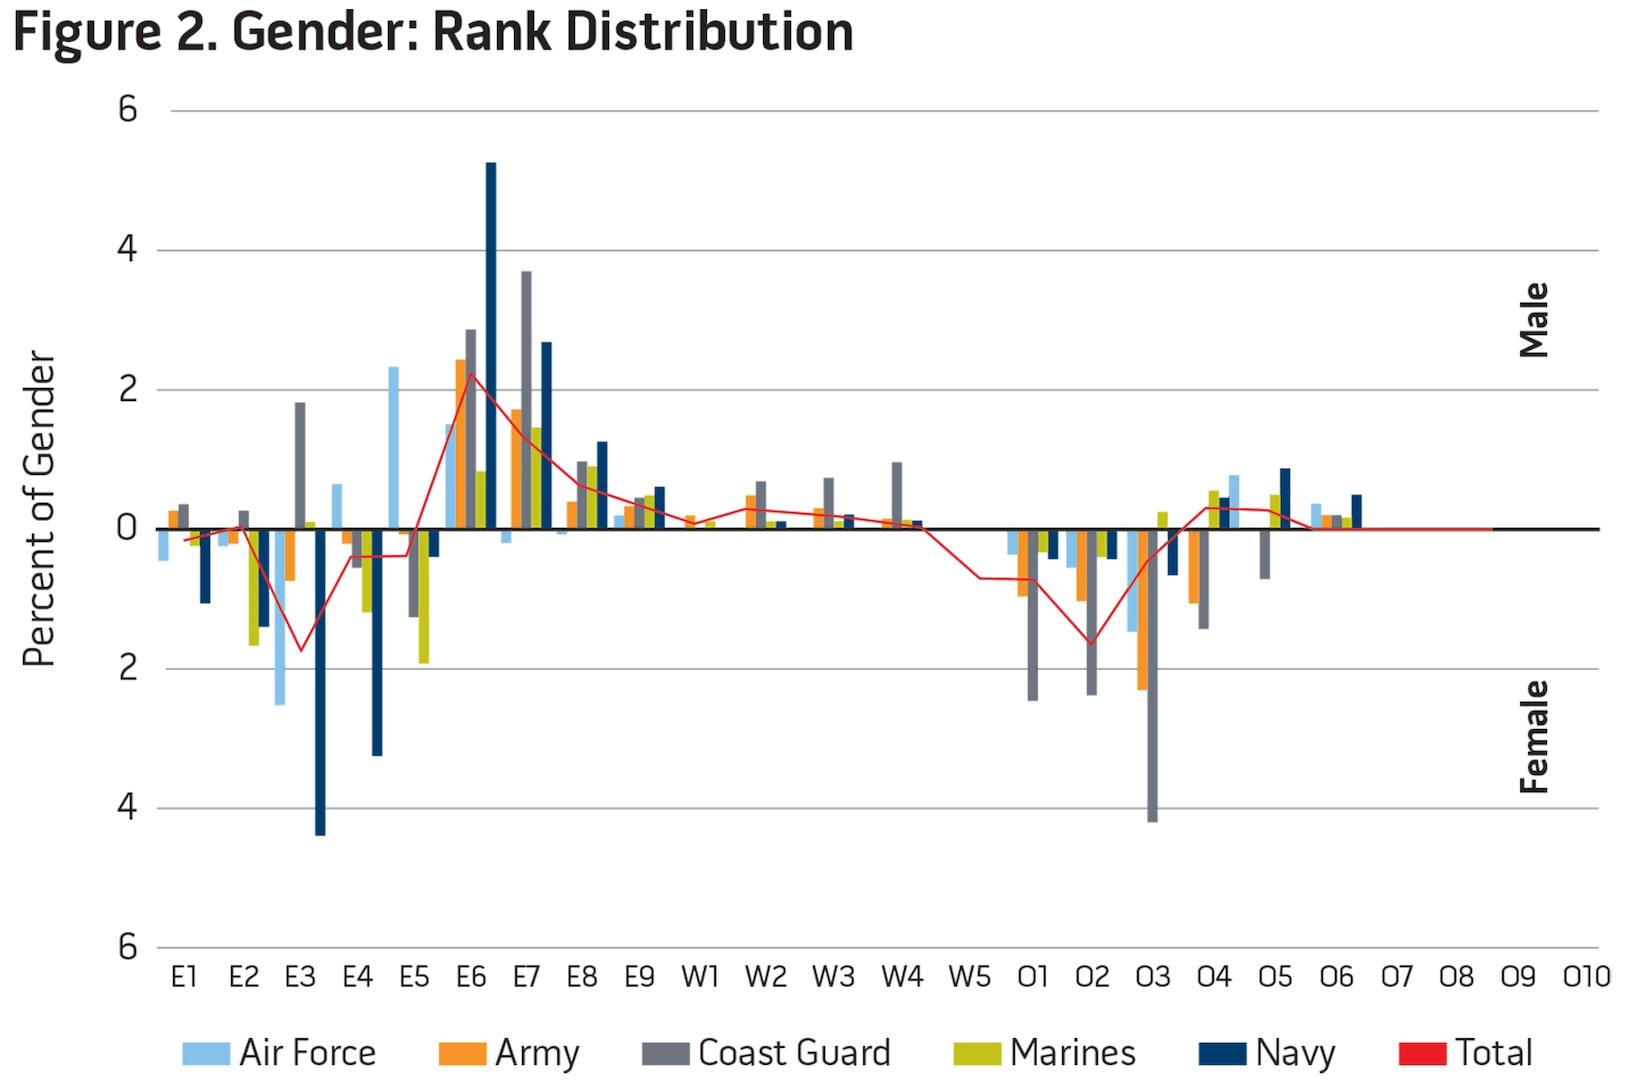 Figure 2. Gender: Rank Distribution